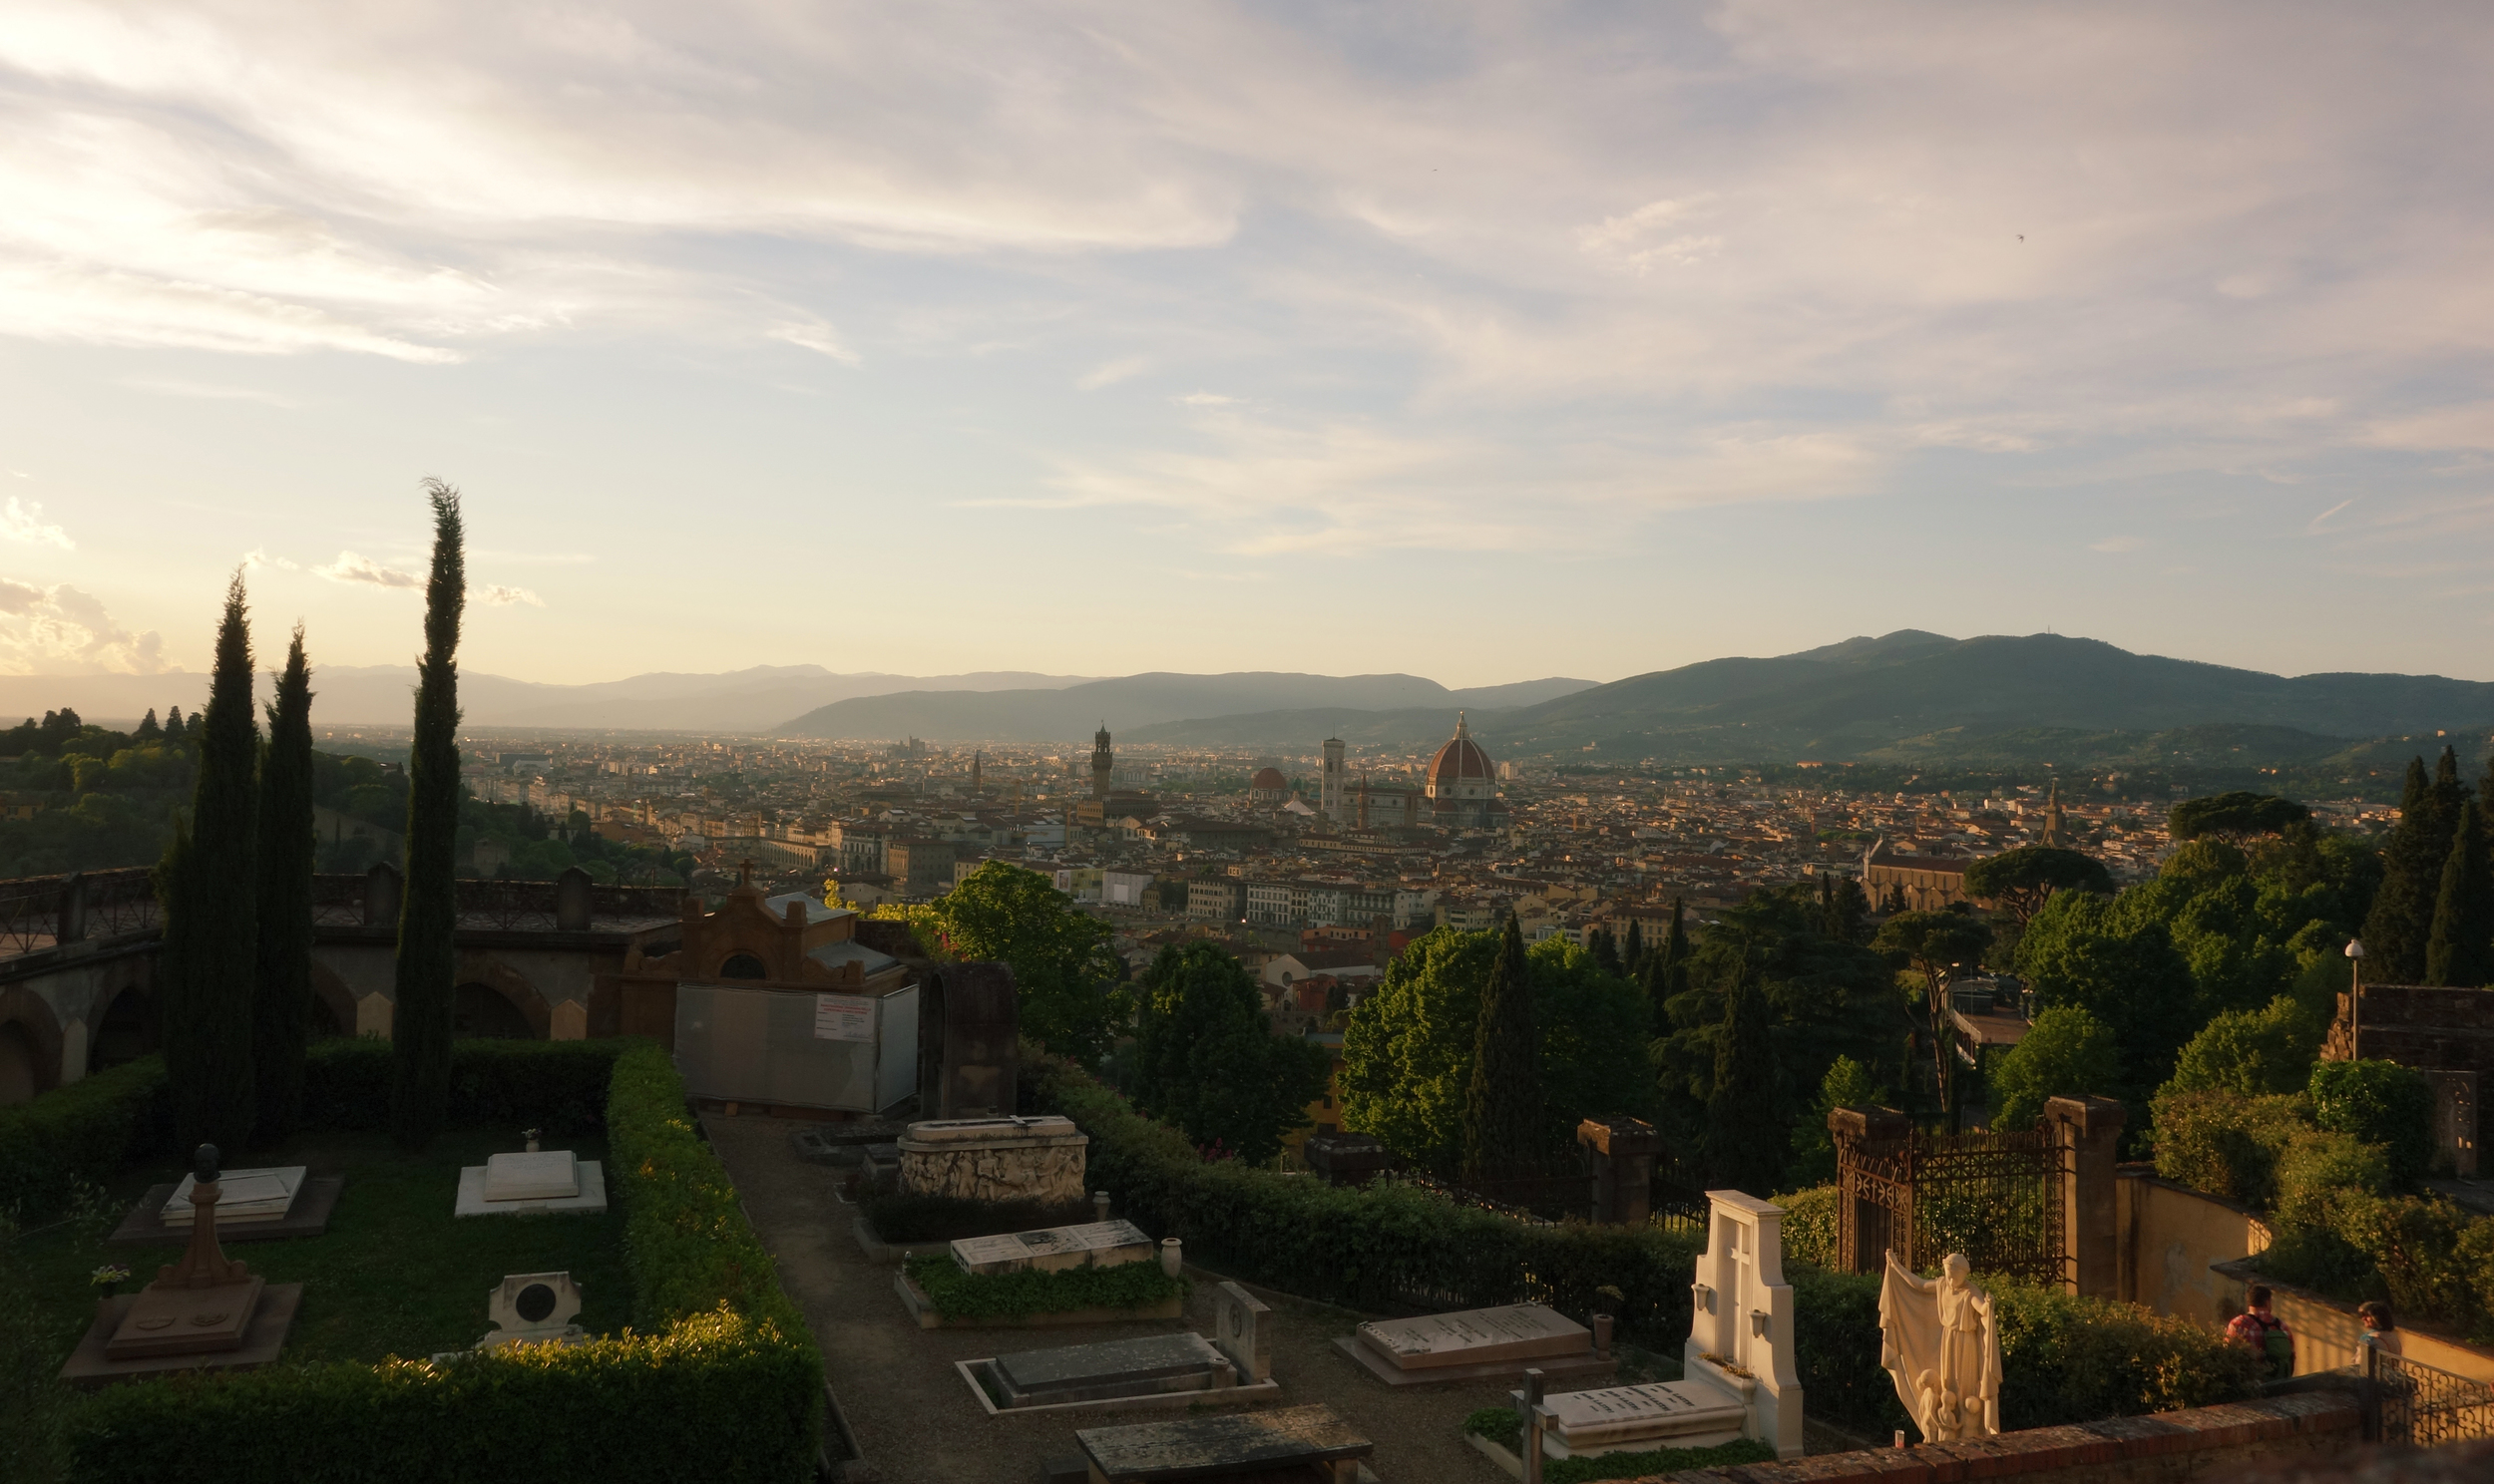 View from the top of Giardini di Boboli (Boboli Gardens) and Piazzale Michelangelo - my favorite places in Florence.